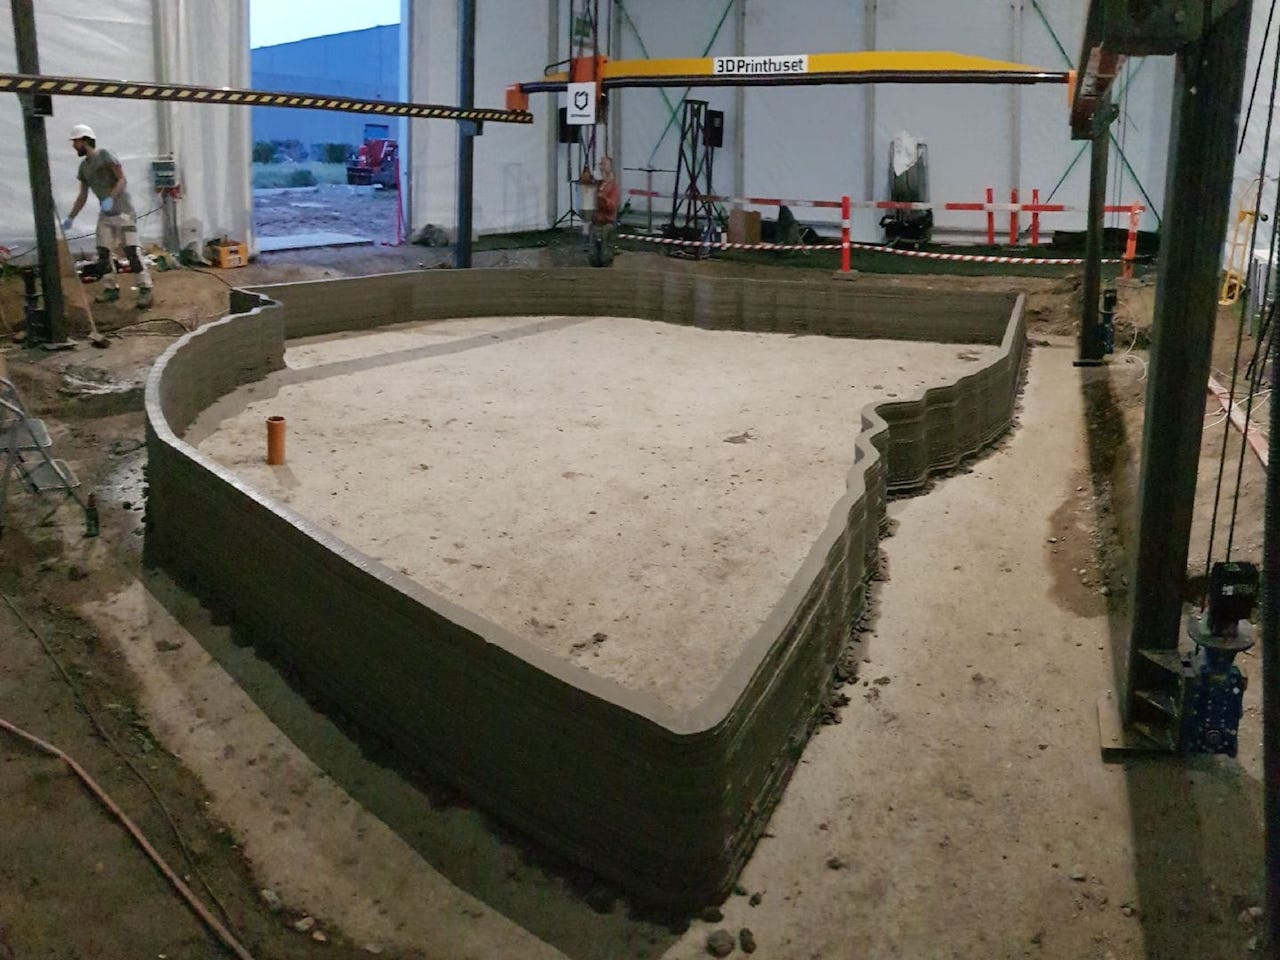 Completed lower section of Copenhagen's first 3D printed building